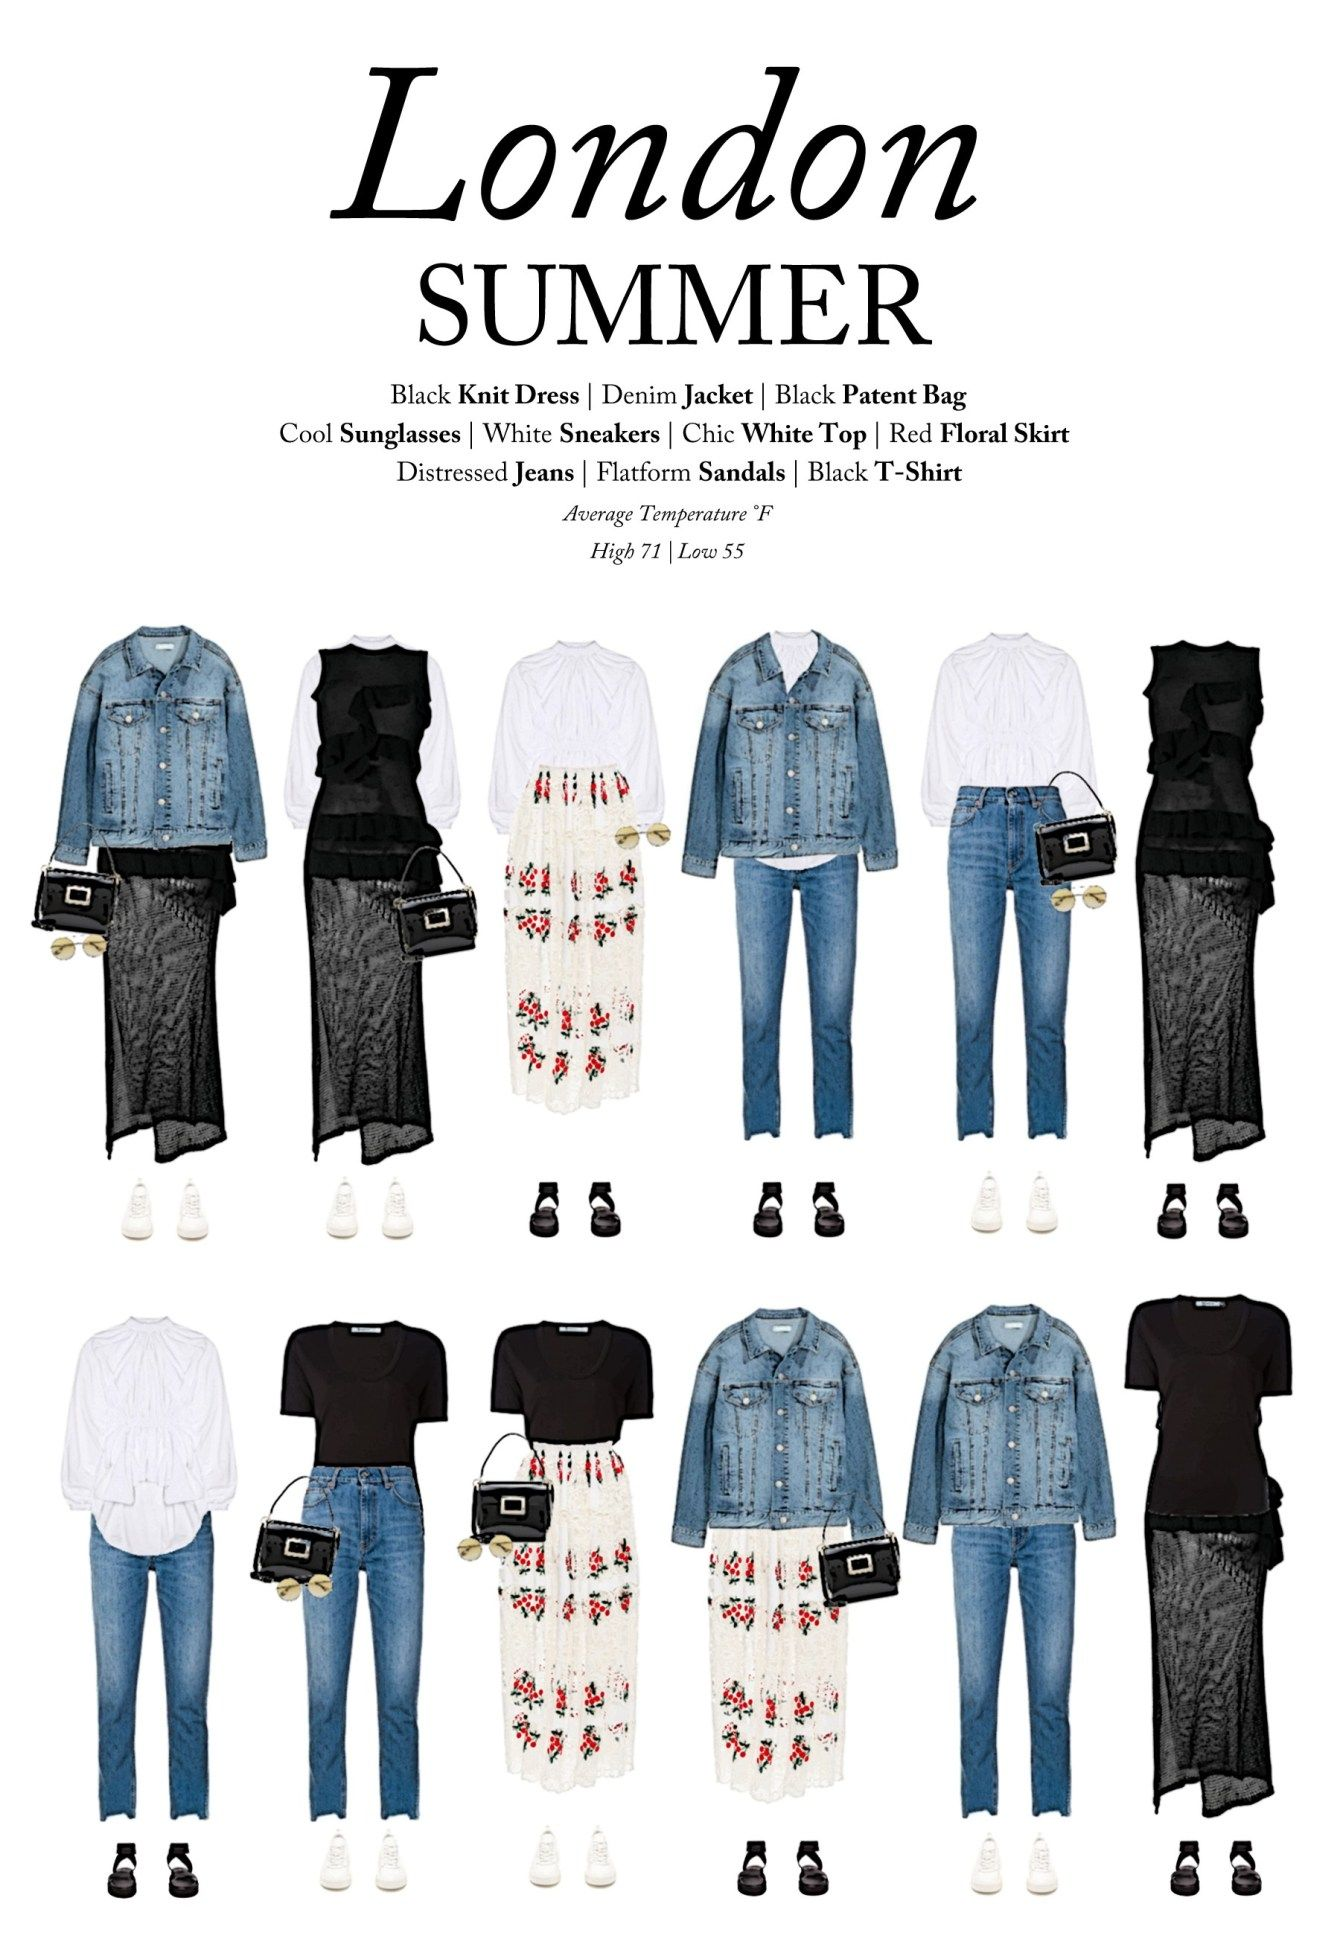 What You Should Be Wearing To London This Summer By Outfits For Travel London Summer Outfits London Outfit London England Fashion